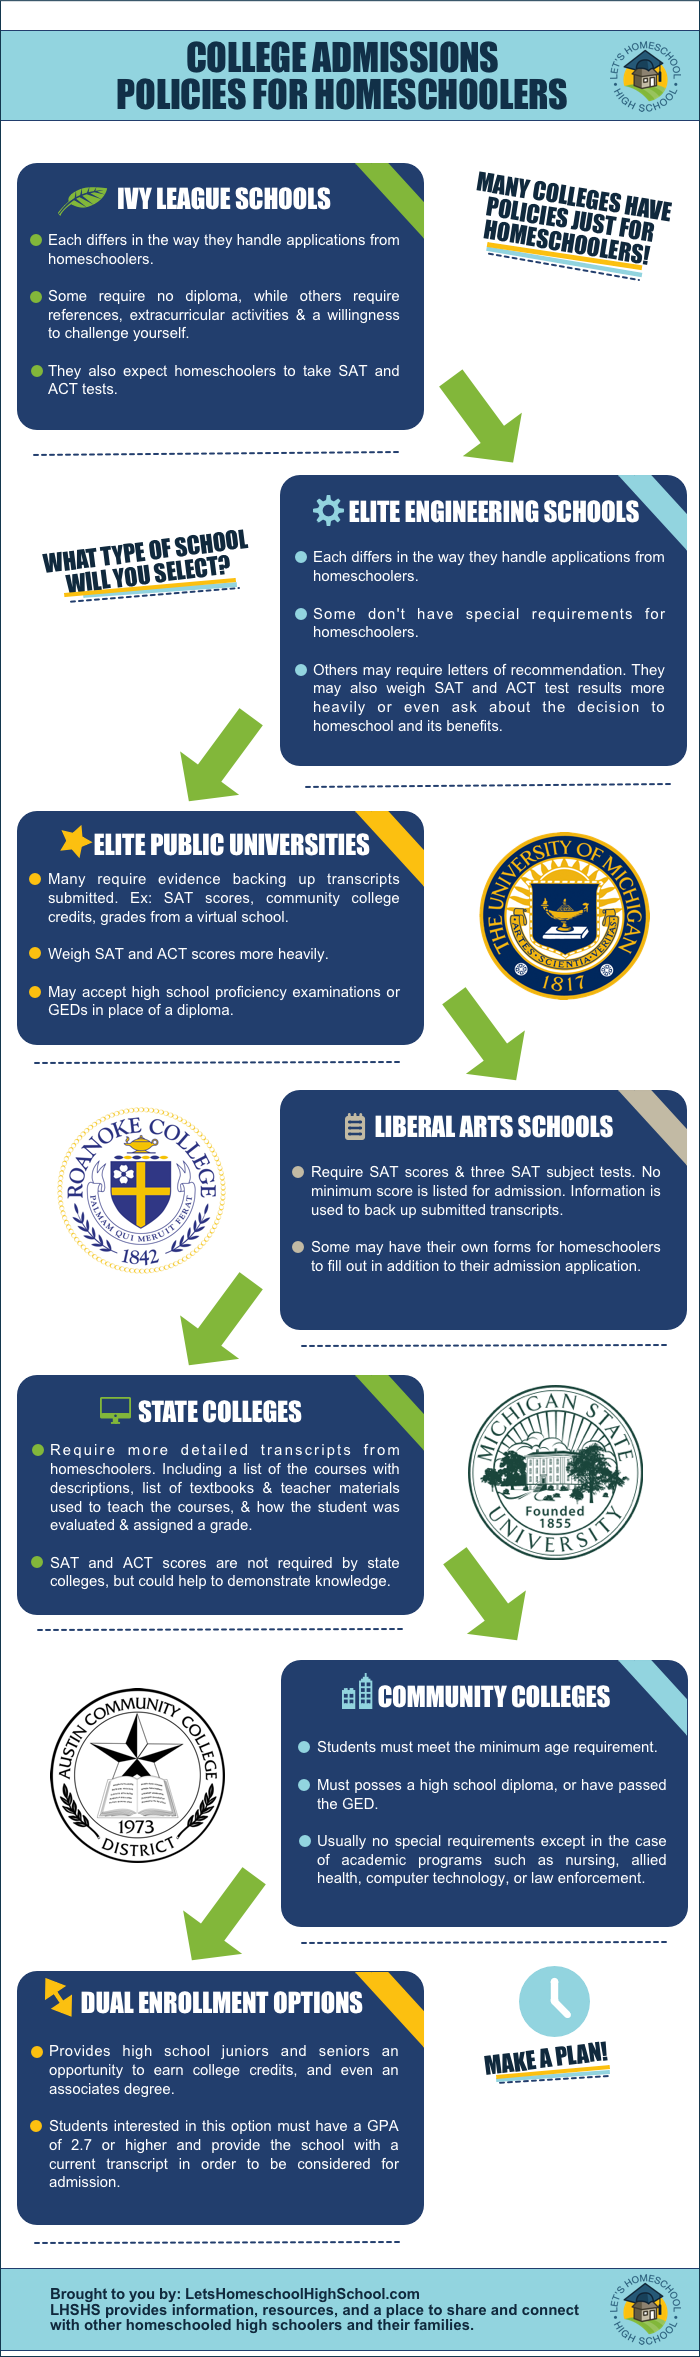 College Admissions for Homeschoolers